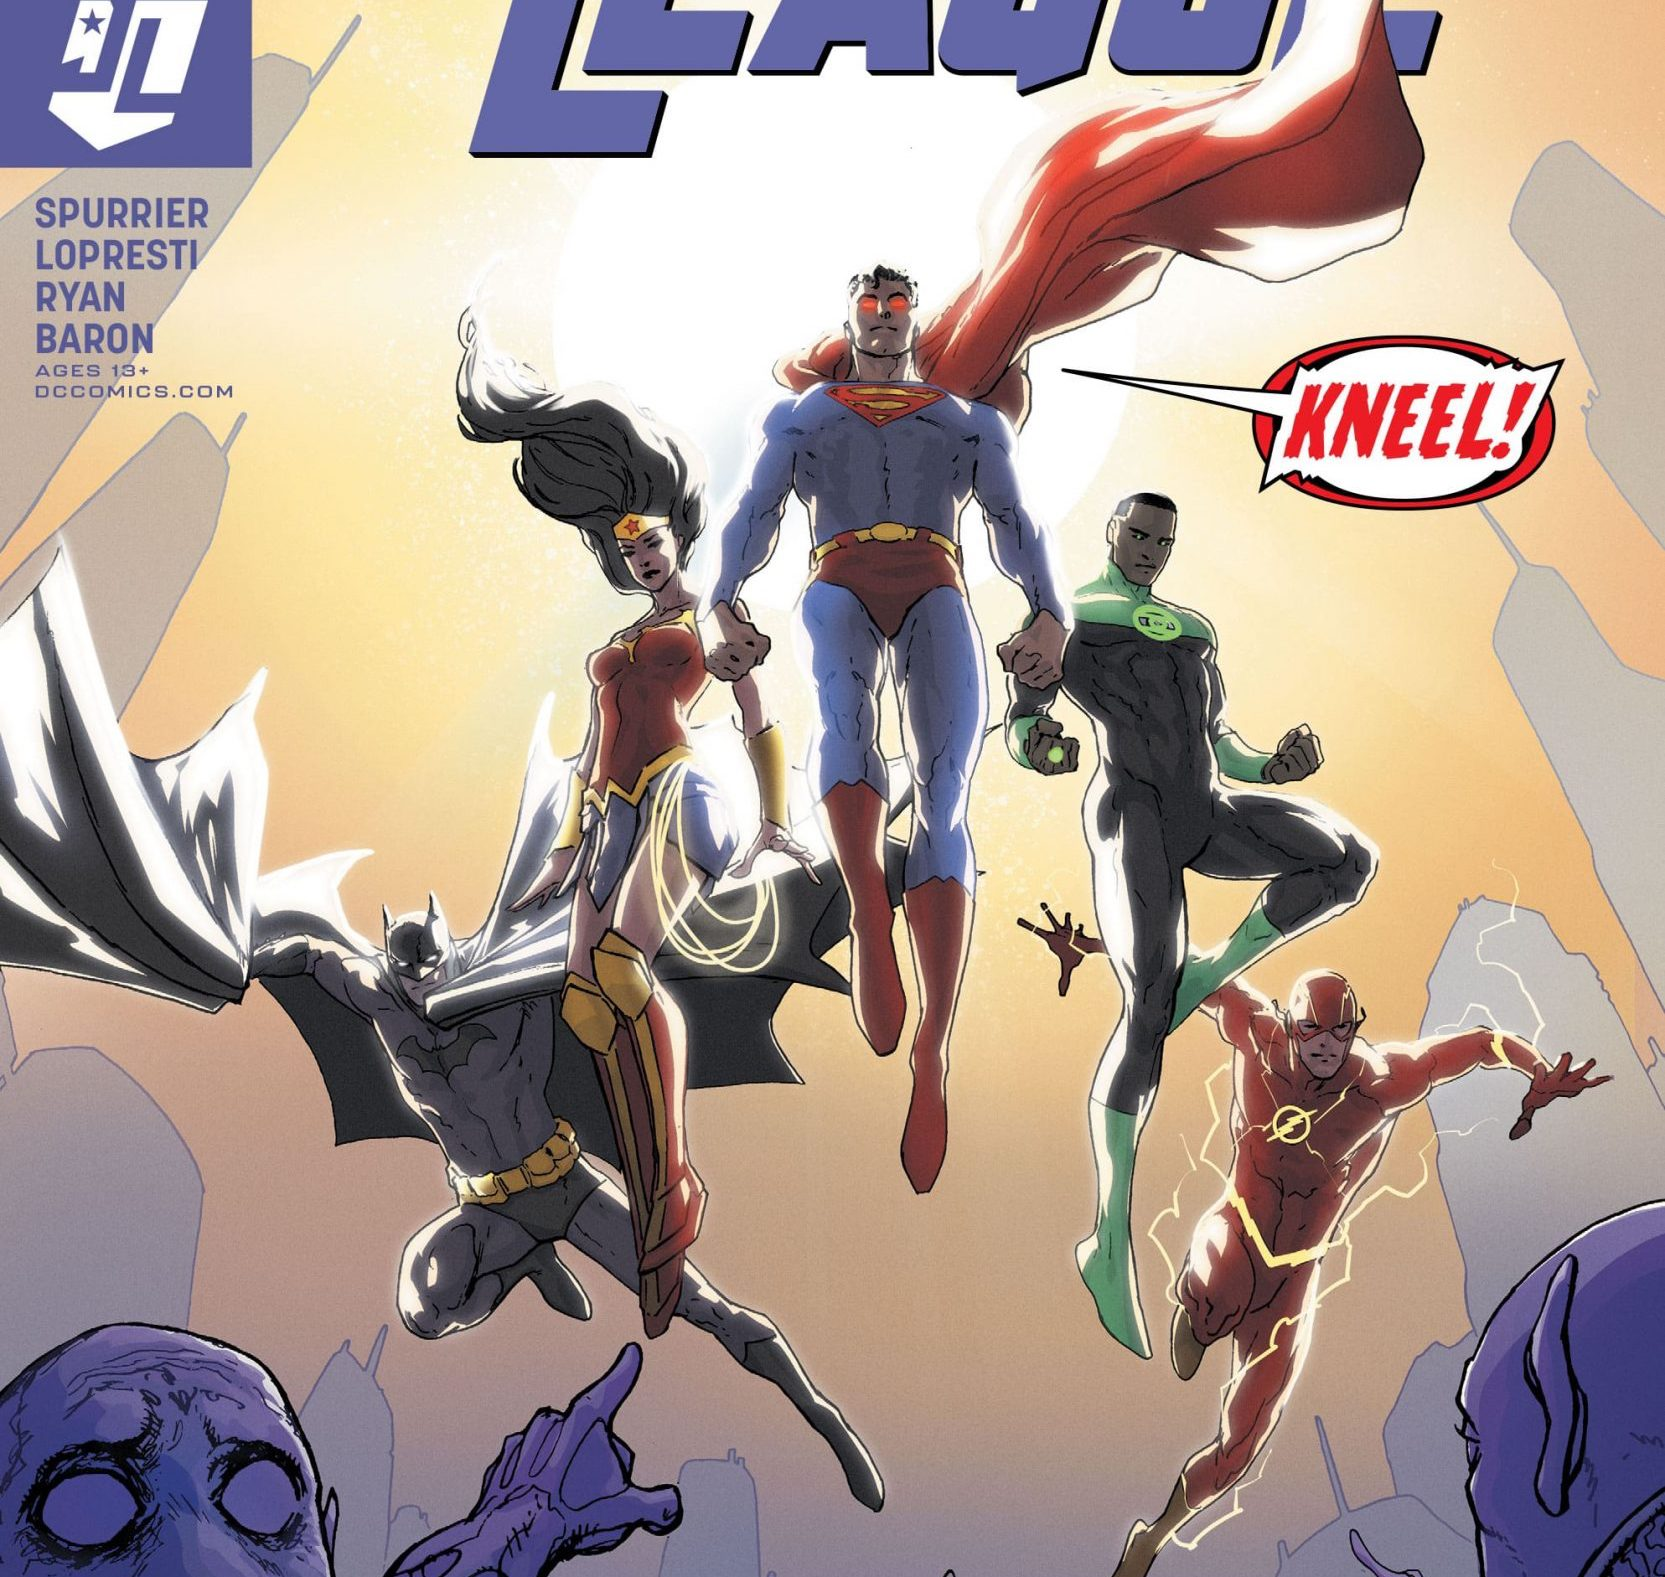 'Justice League' #48 review: Good sci-fi and great team chemistry